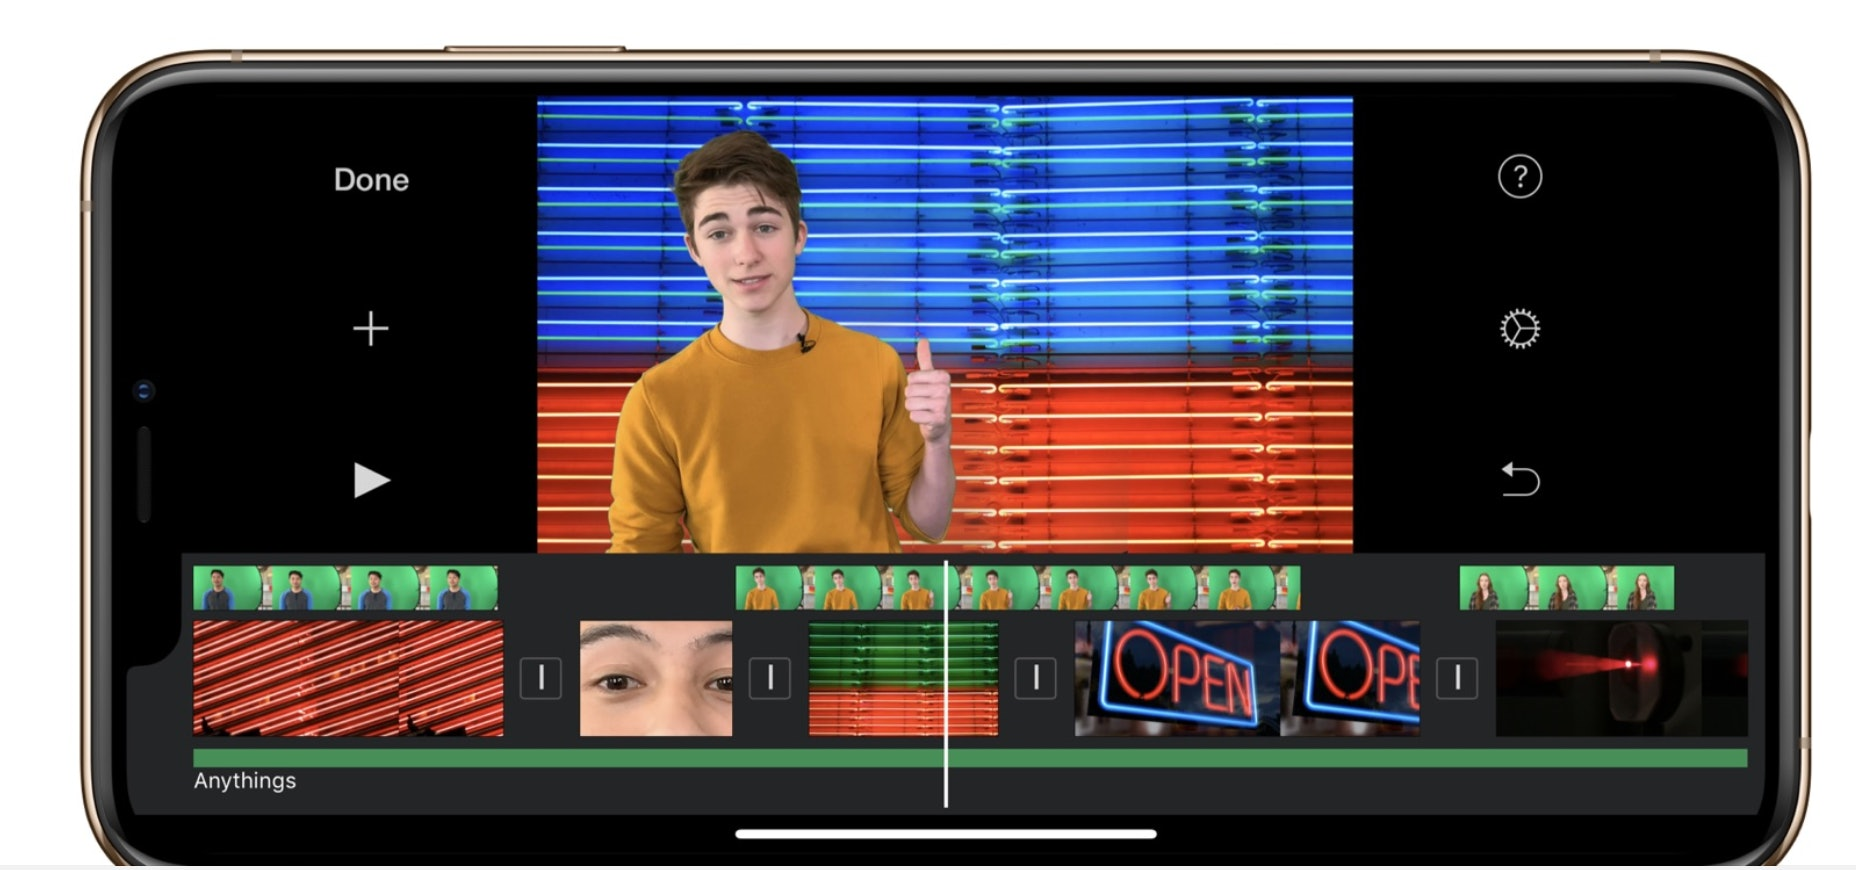 How To Use Imovie S Green Screen To Edit Videos On Your Iphone